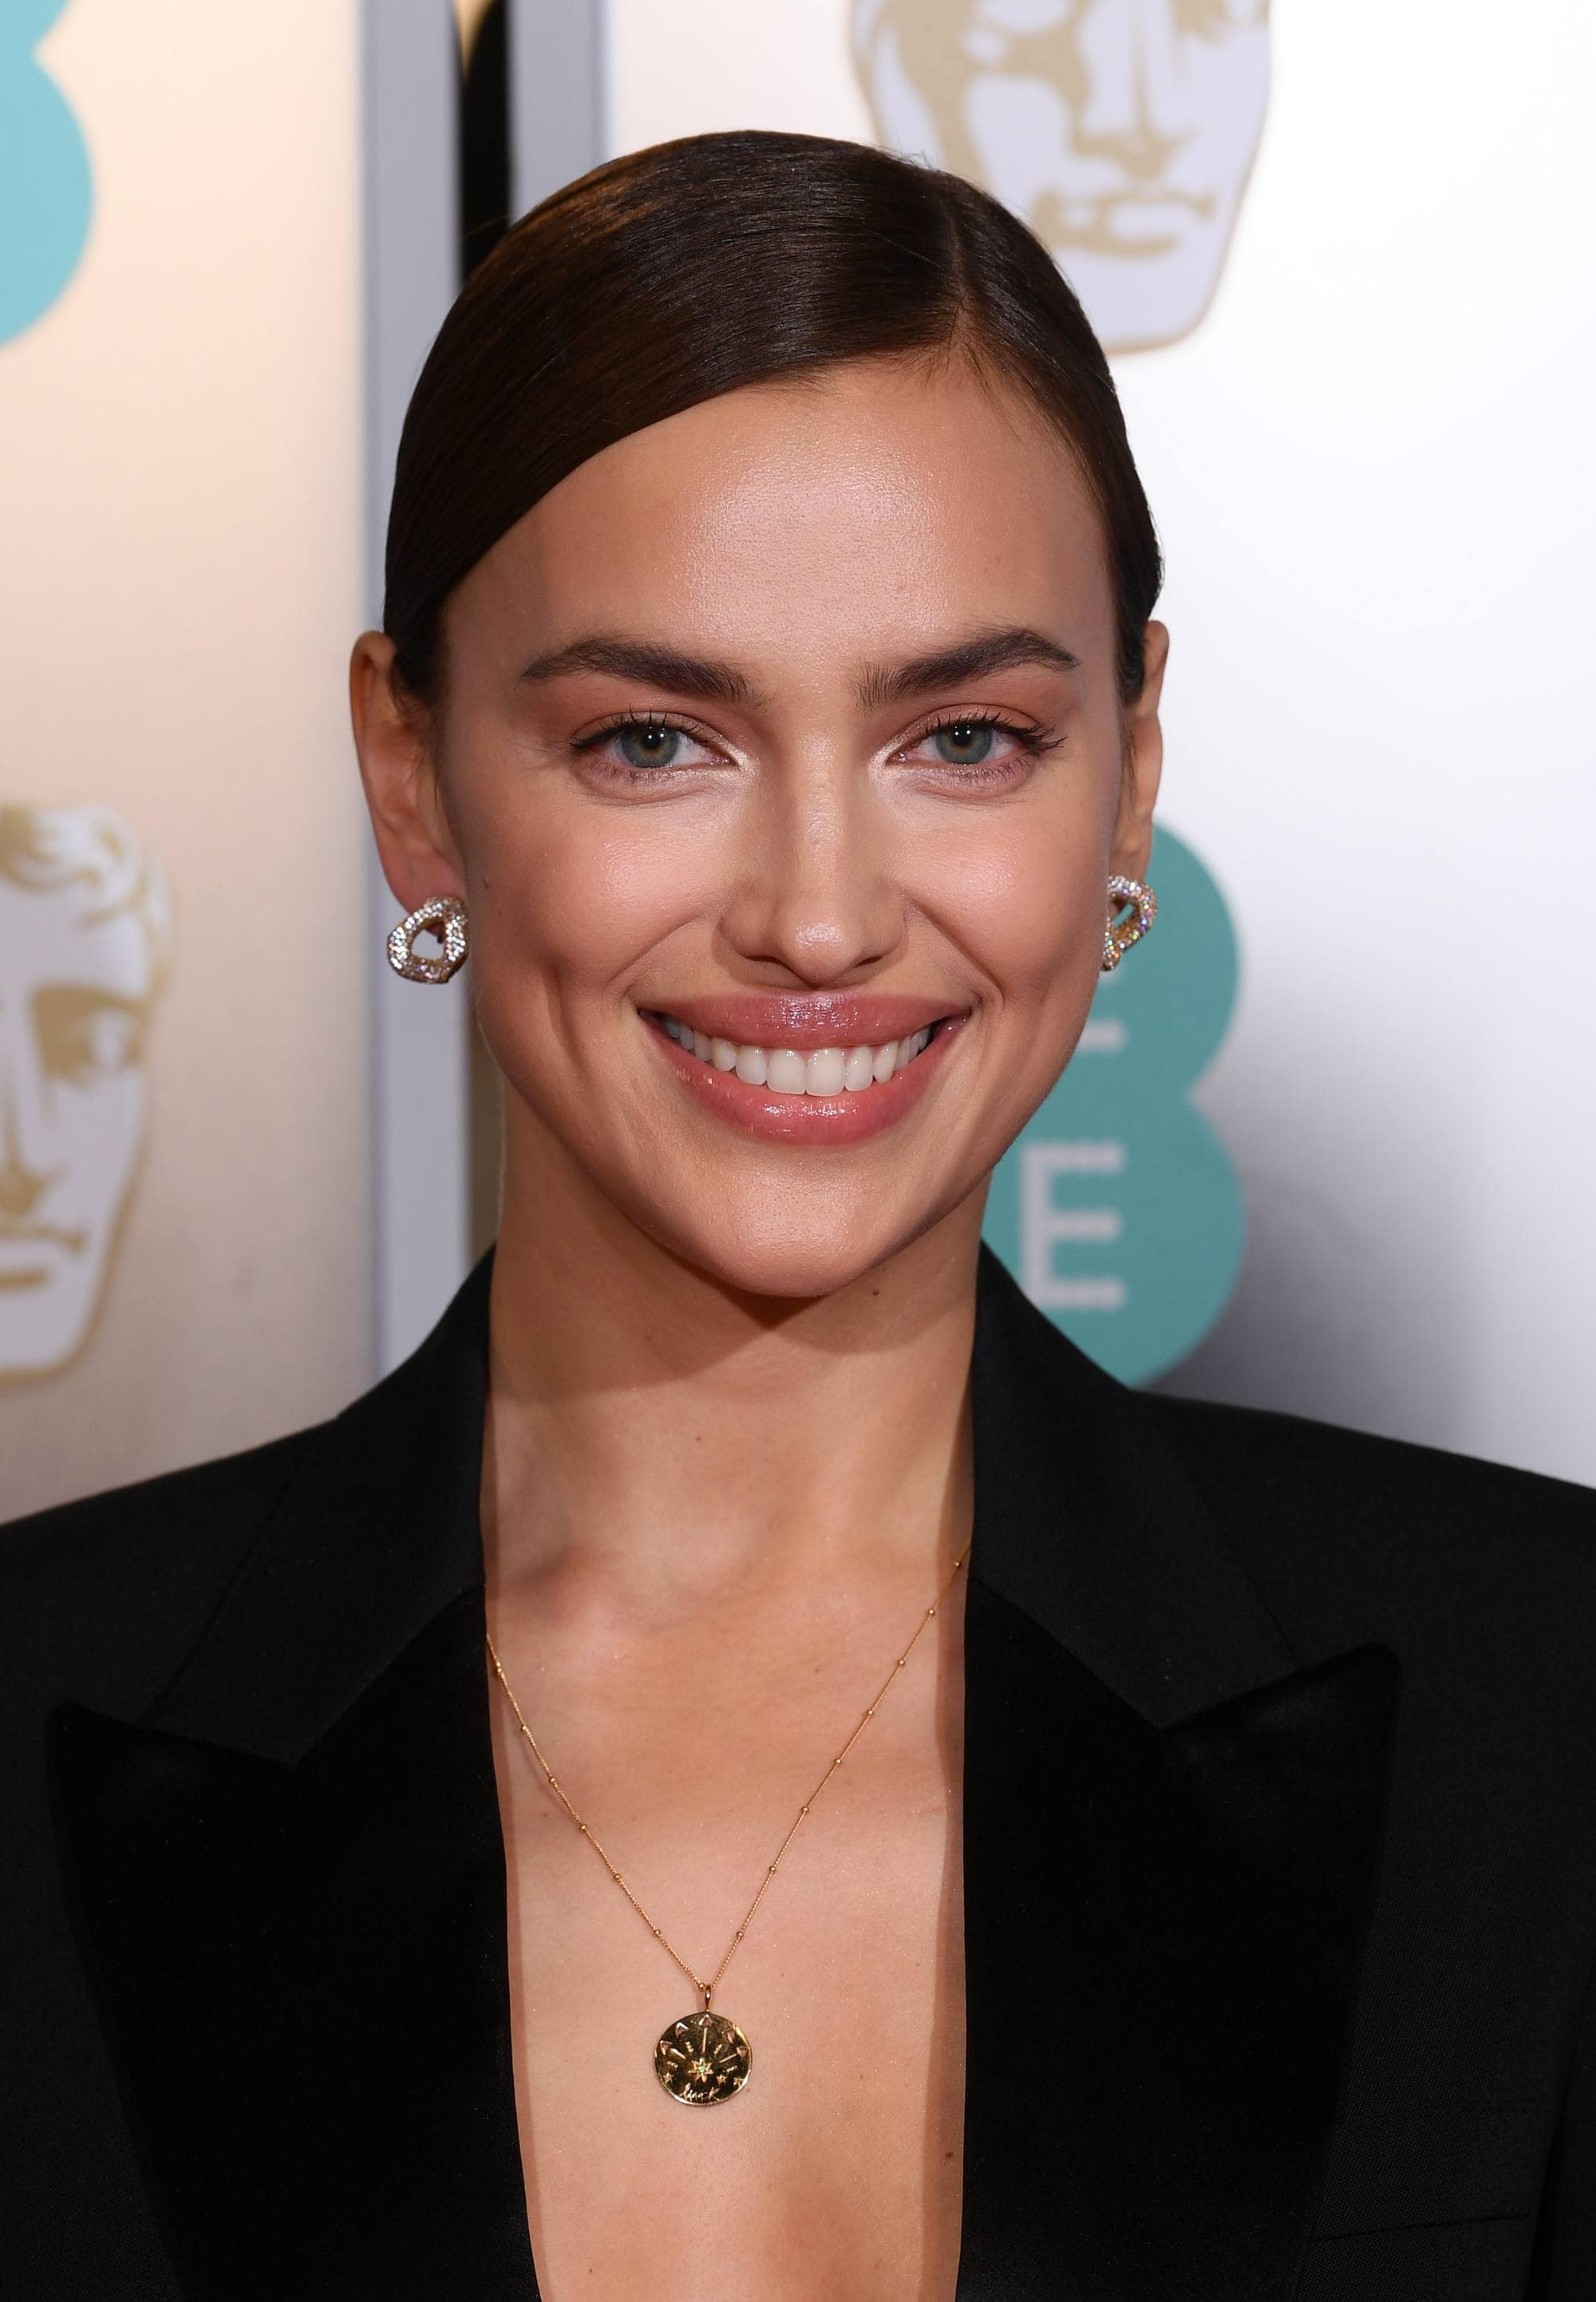 Red carpet hairstyles: Irina Shayk with brown hair styled in side parted smooth bun updo wearing a black smart jacket.